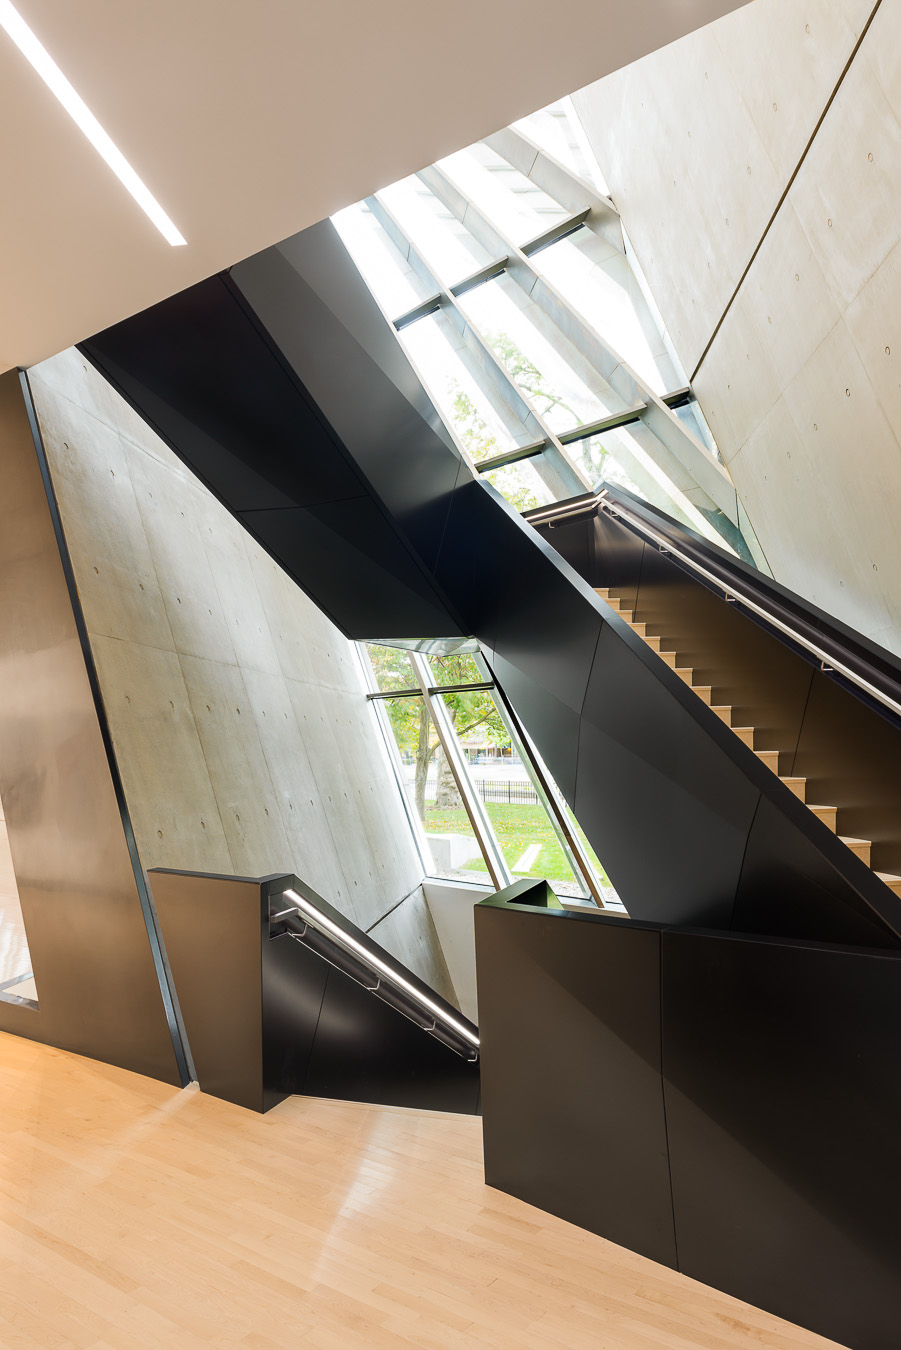 191-Zaha Hadid Broad Museum Lansing Doublespace Toronto Architectural Photography.jpg